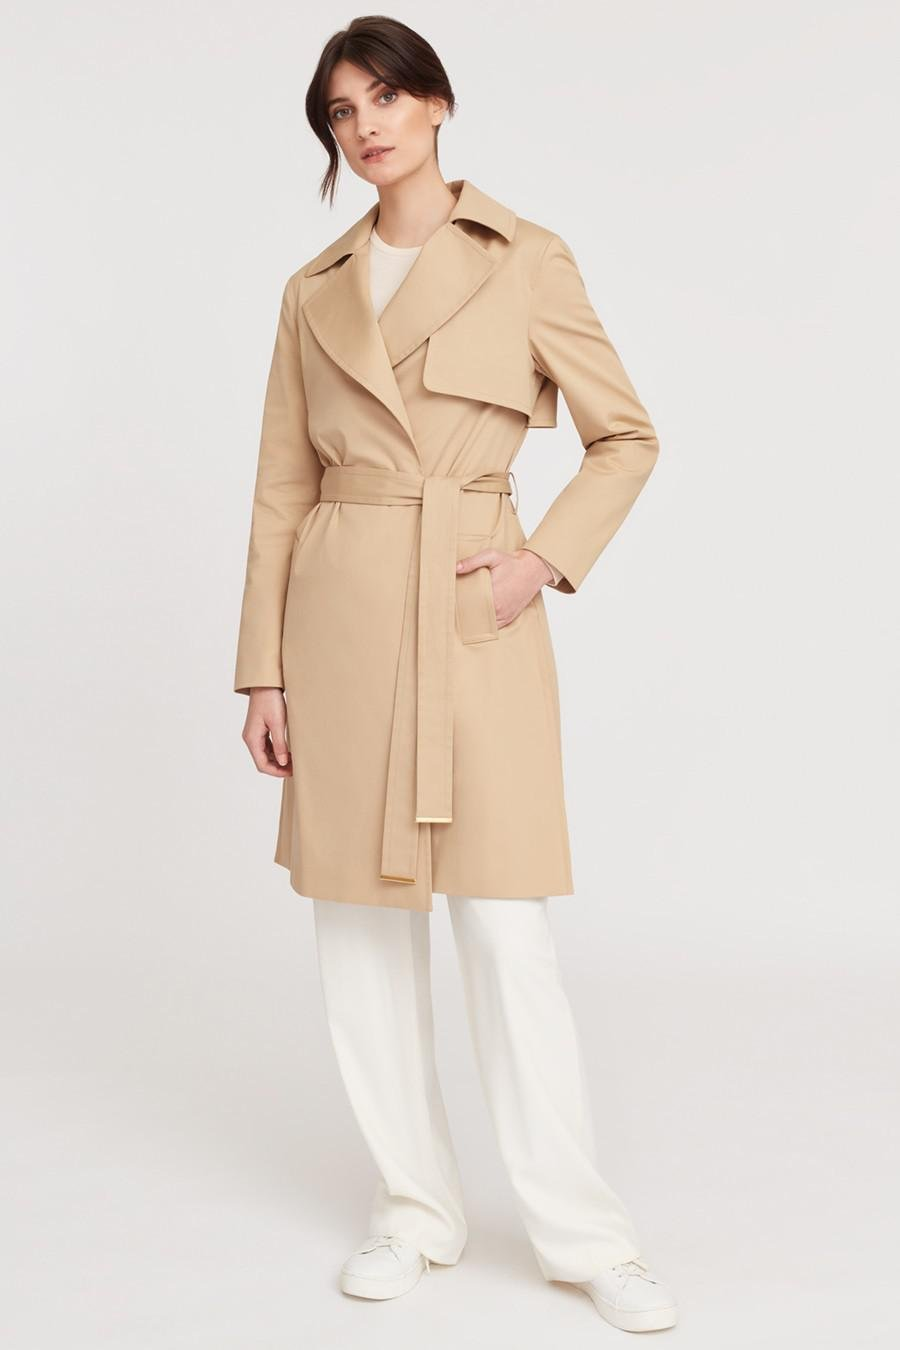 Women's Classic Trench in Wheat | Size: 1